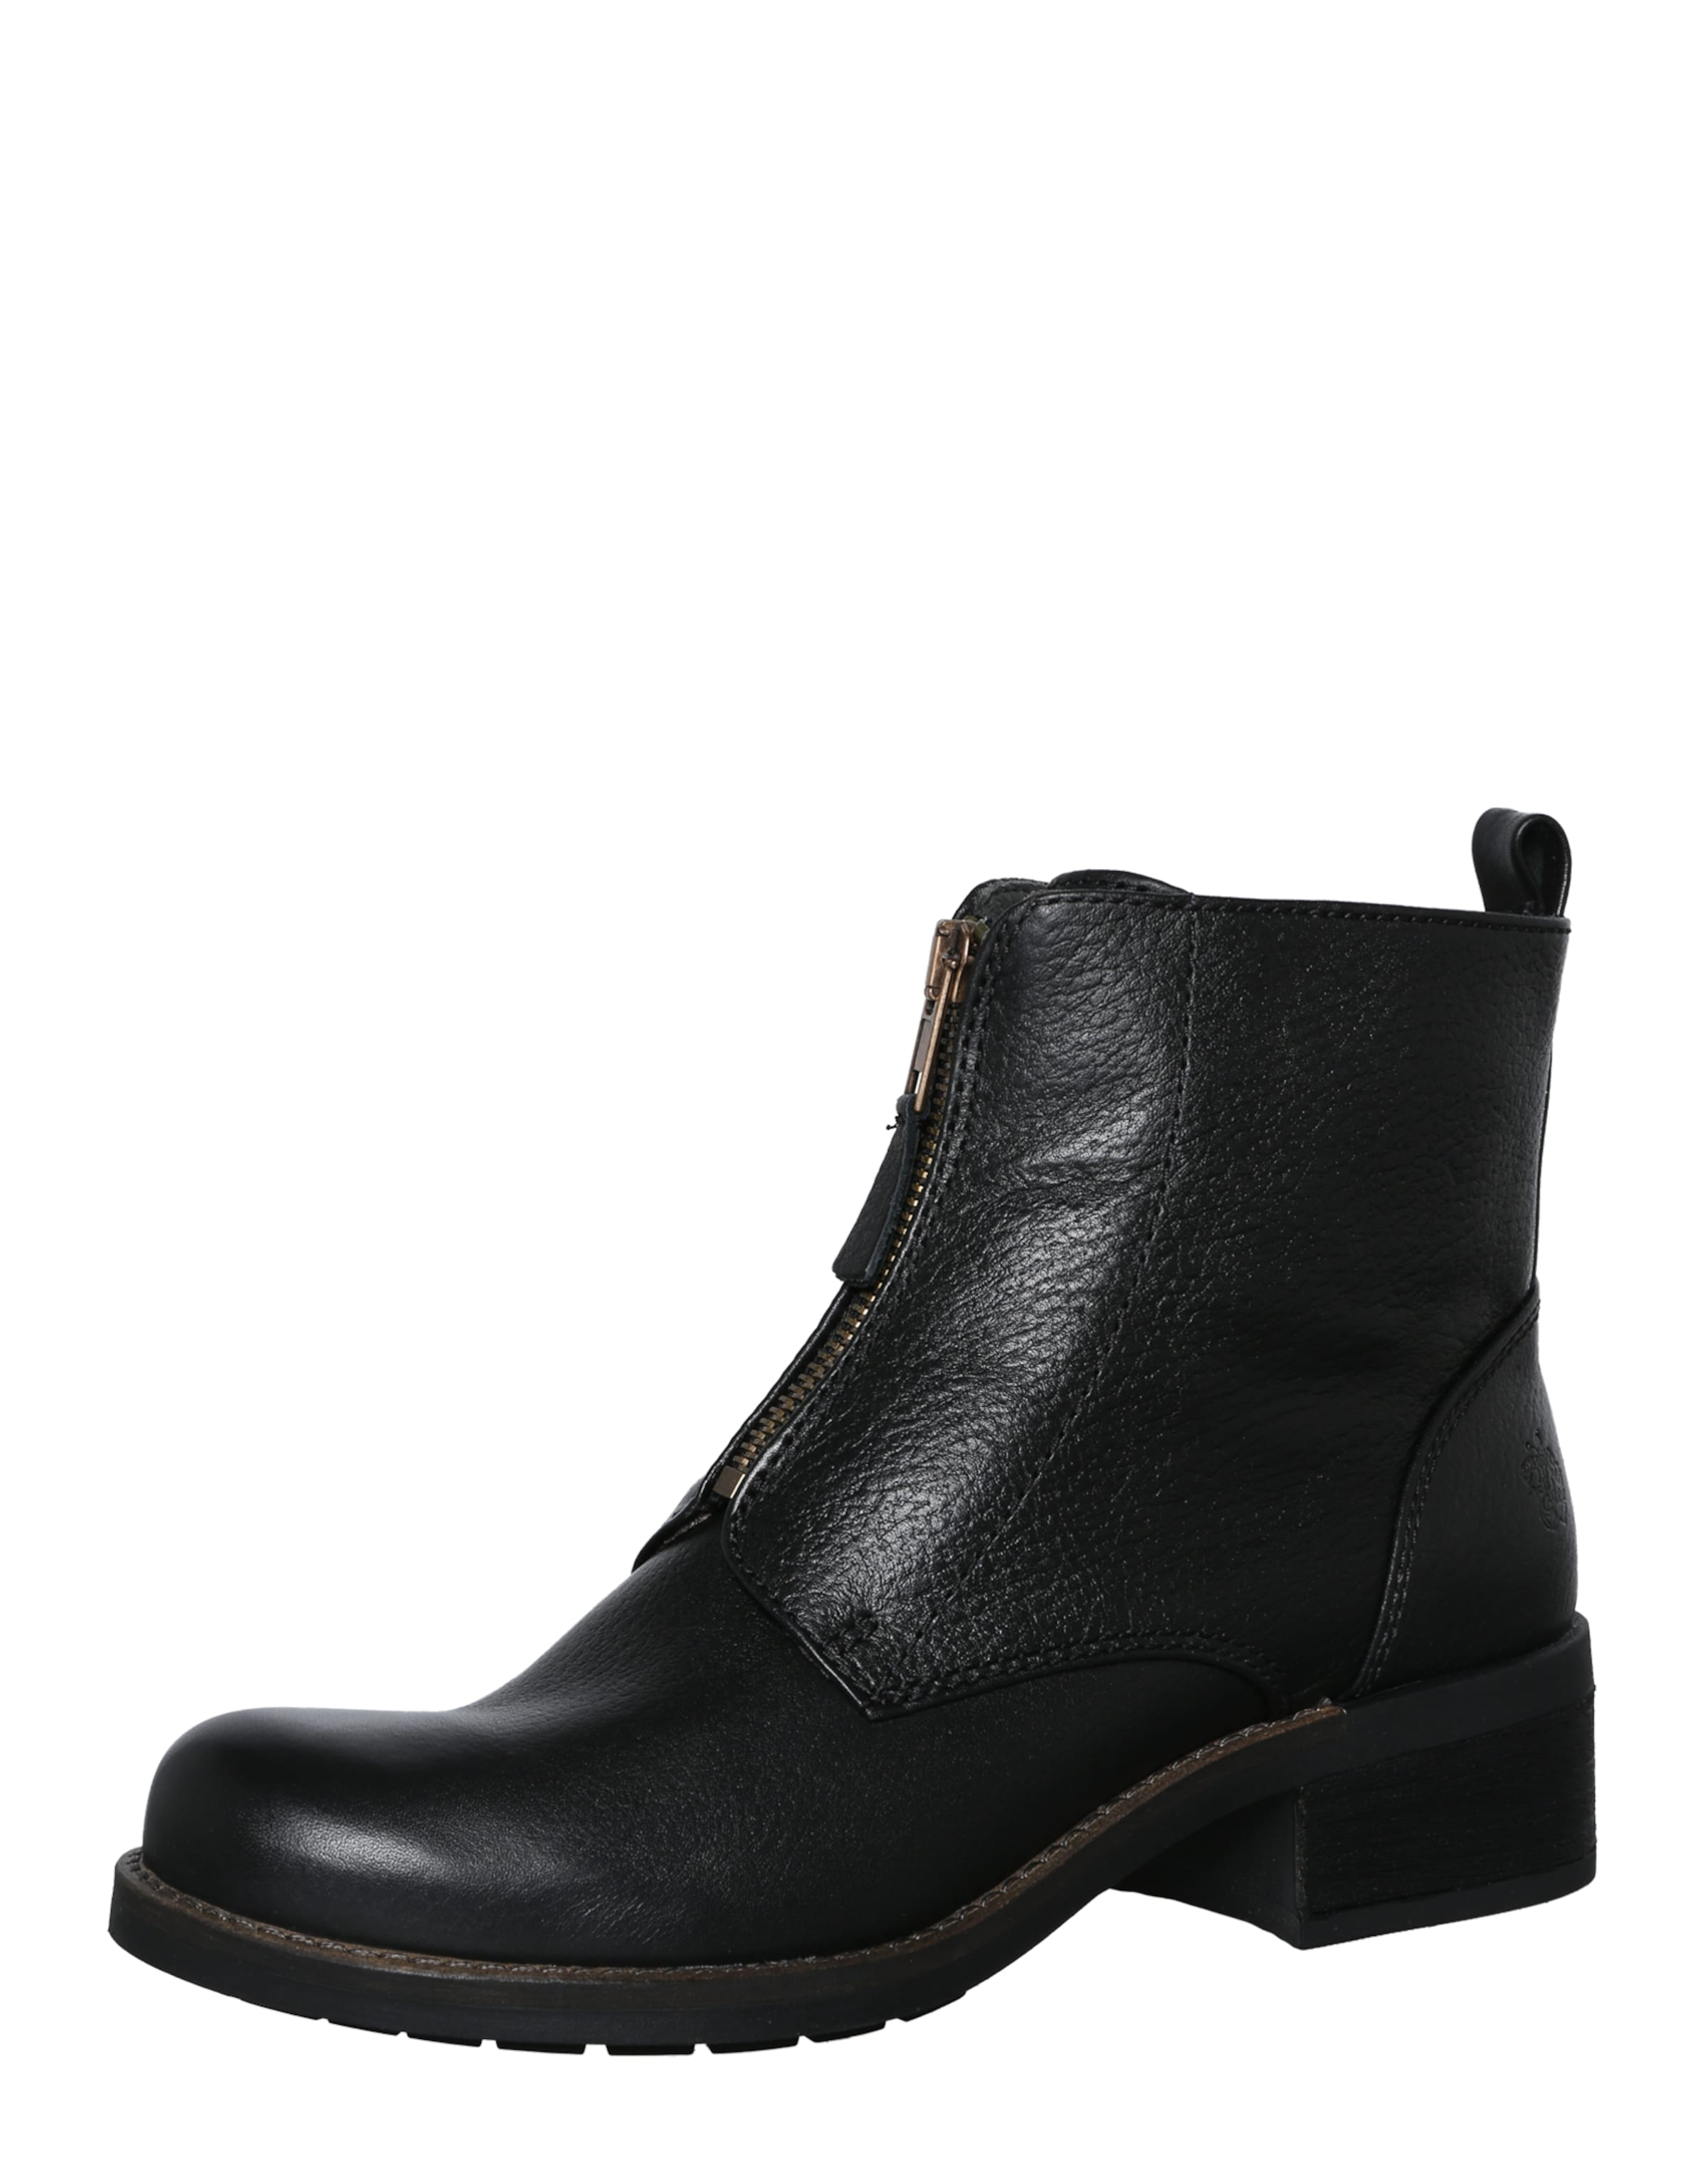 Eden 'dia' Of Stiefelette In Schwarz Apple FuTl1c3KJ